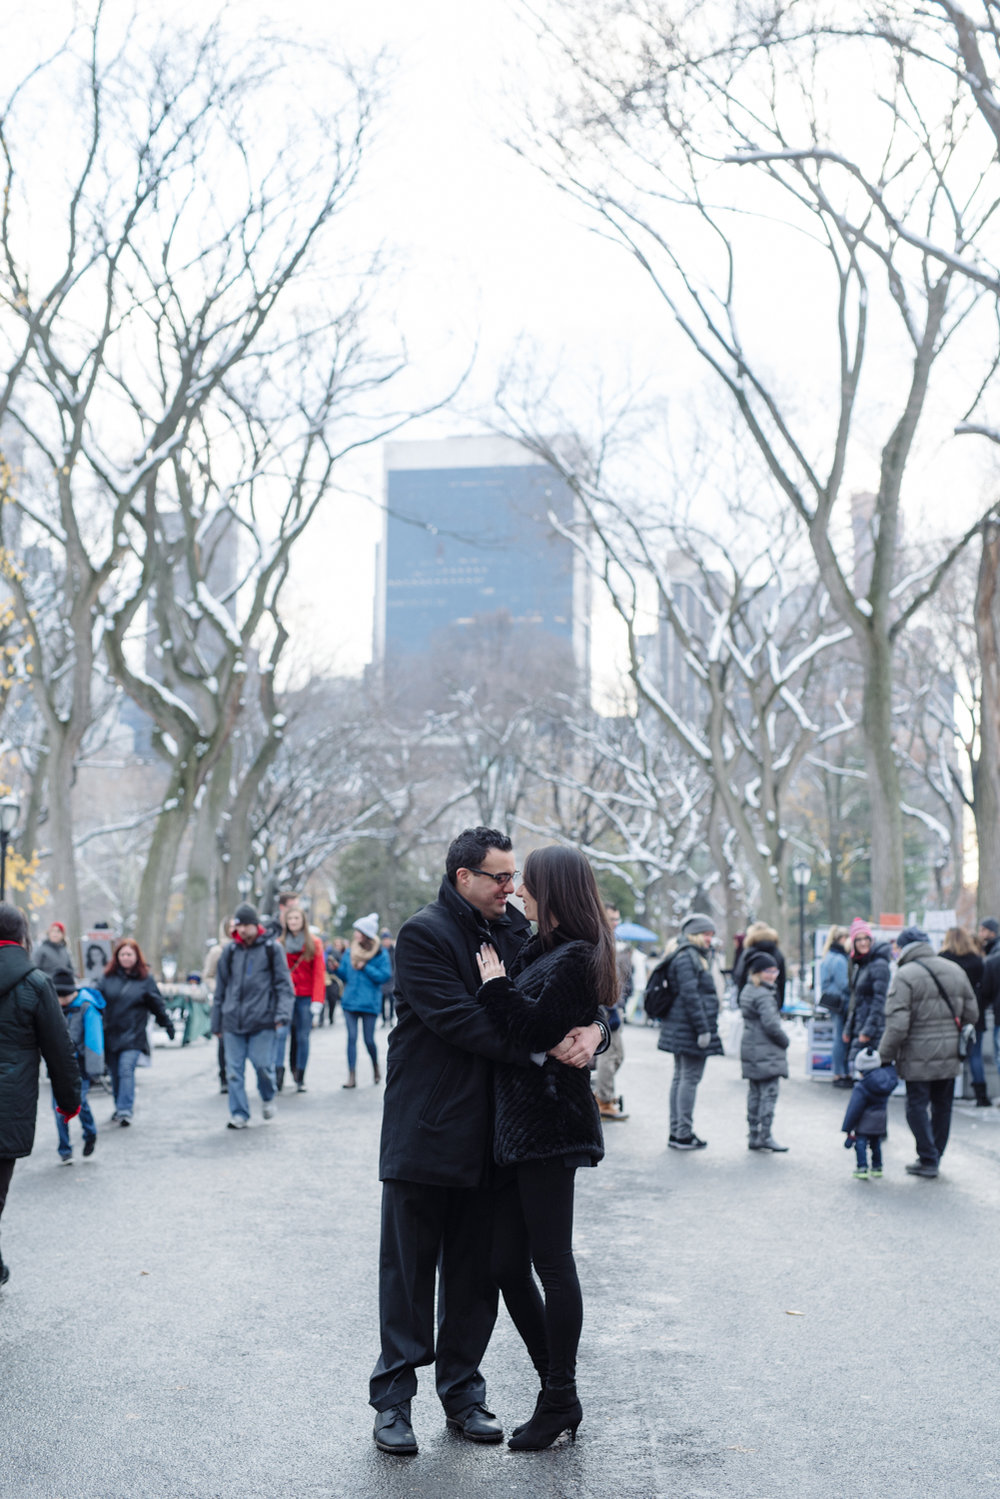 Carmelo+Meg- Central Park Winter Engagement Session- New York City- Olivia Christina Photography-23.JPG